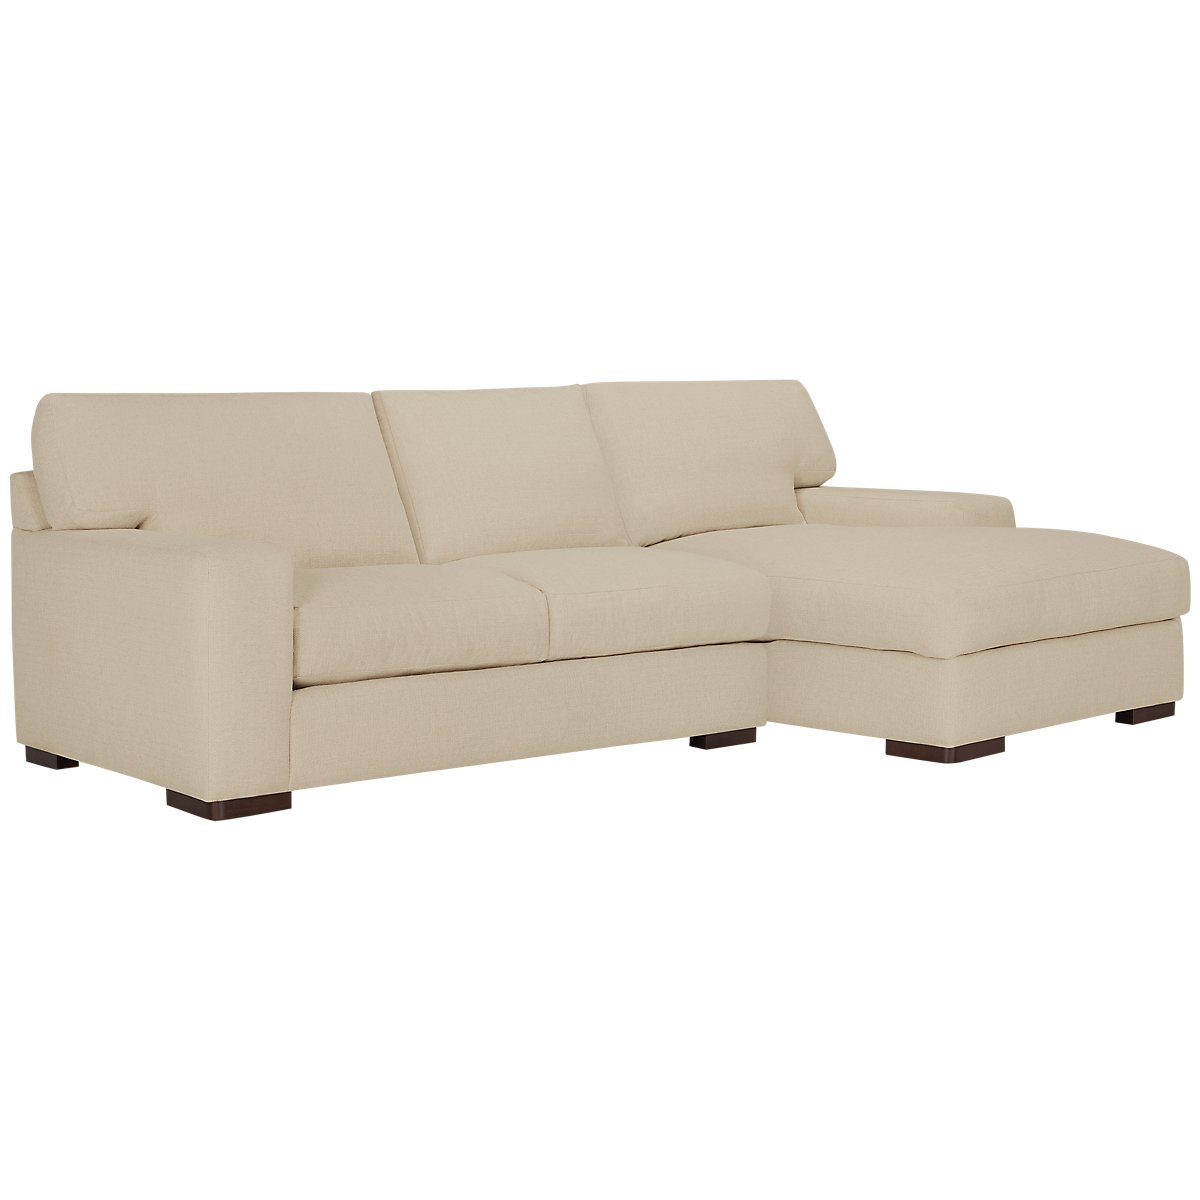 Veronica Khaki Fabric Right Chaise Sectional